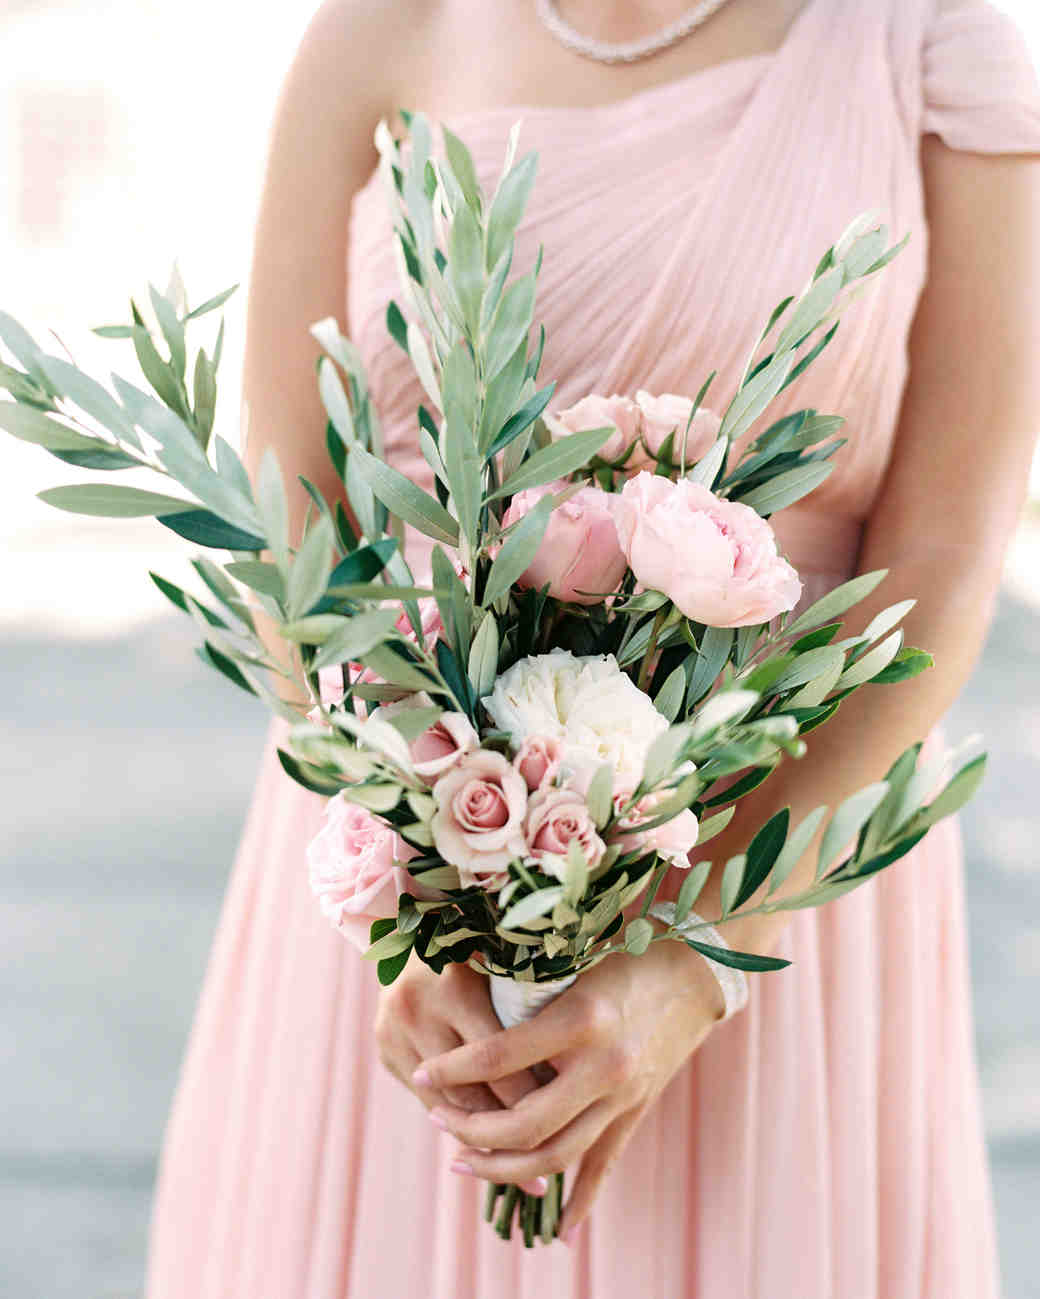 49 Bridesmaid Bouquets Your Girls Will Love | Martha Stewart Weddings